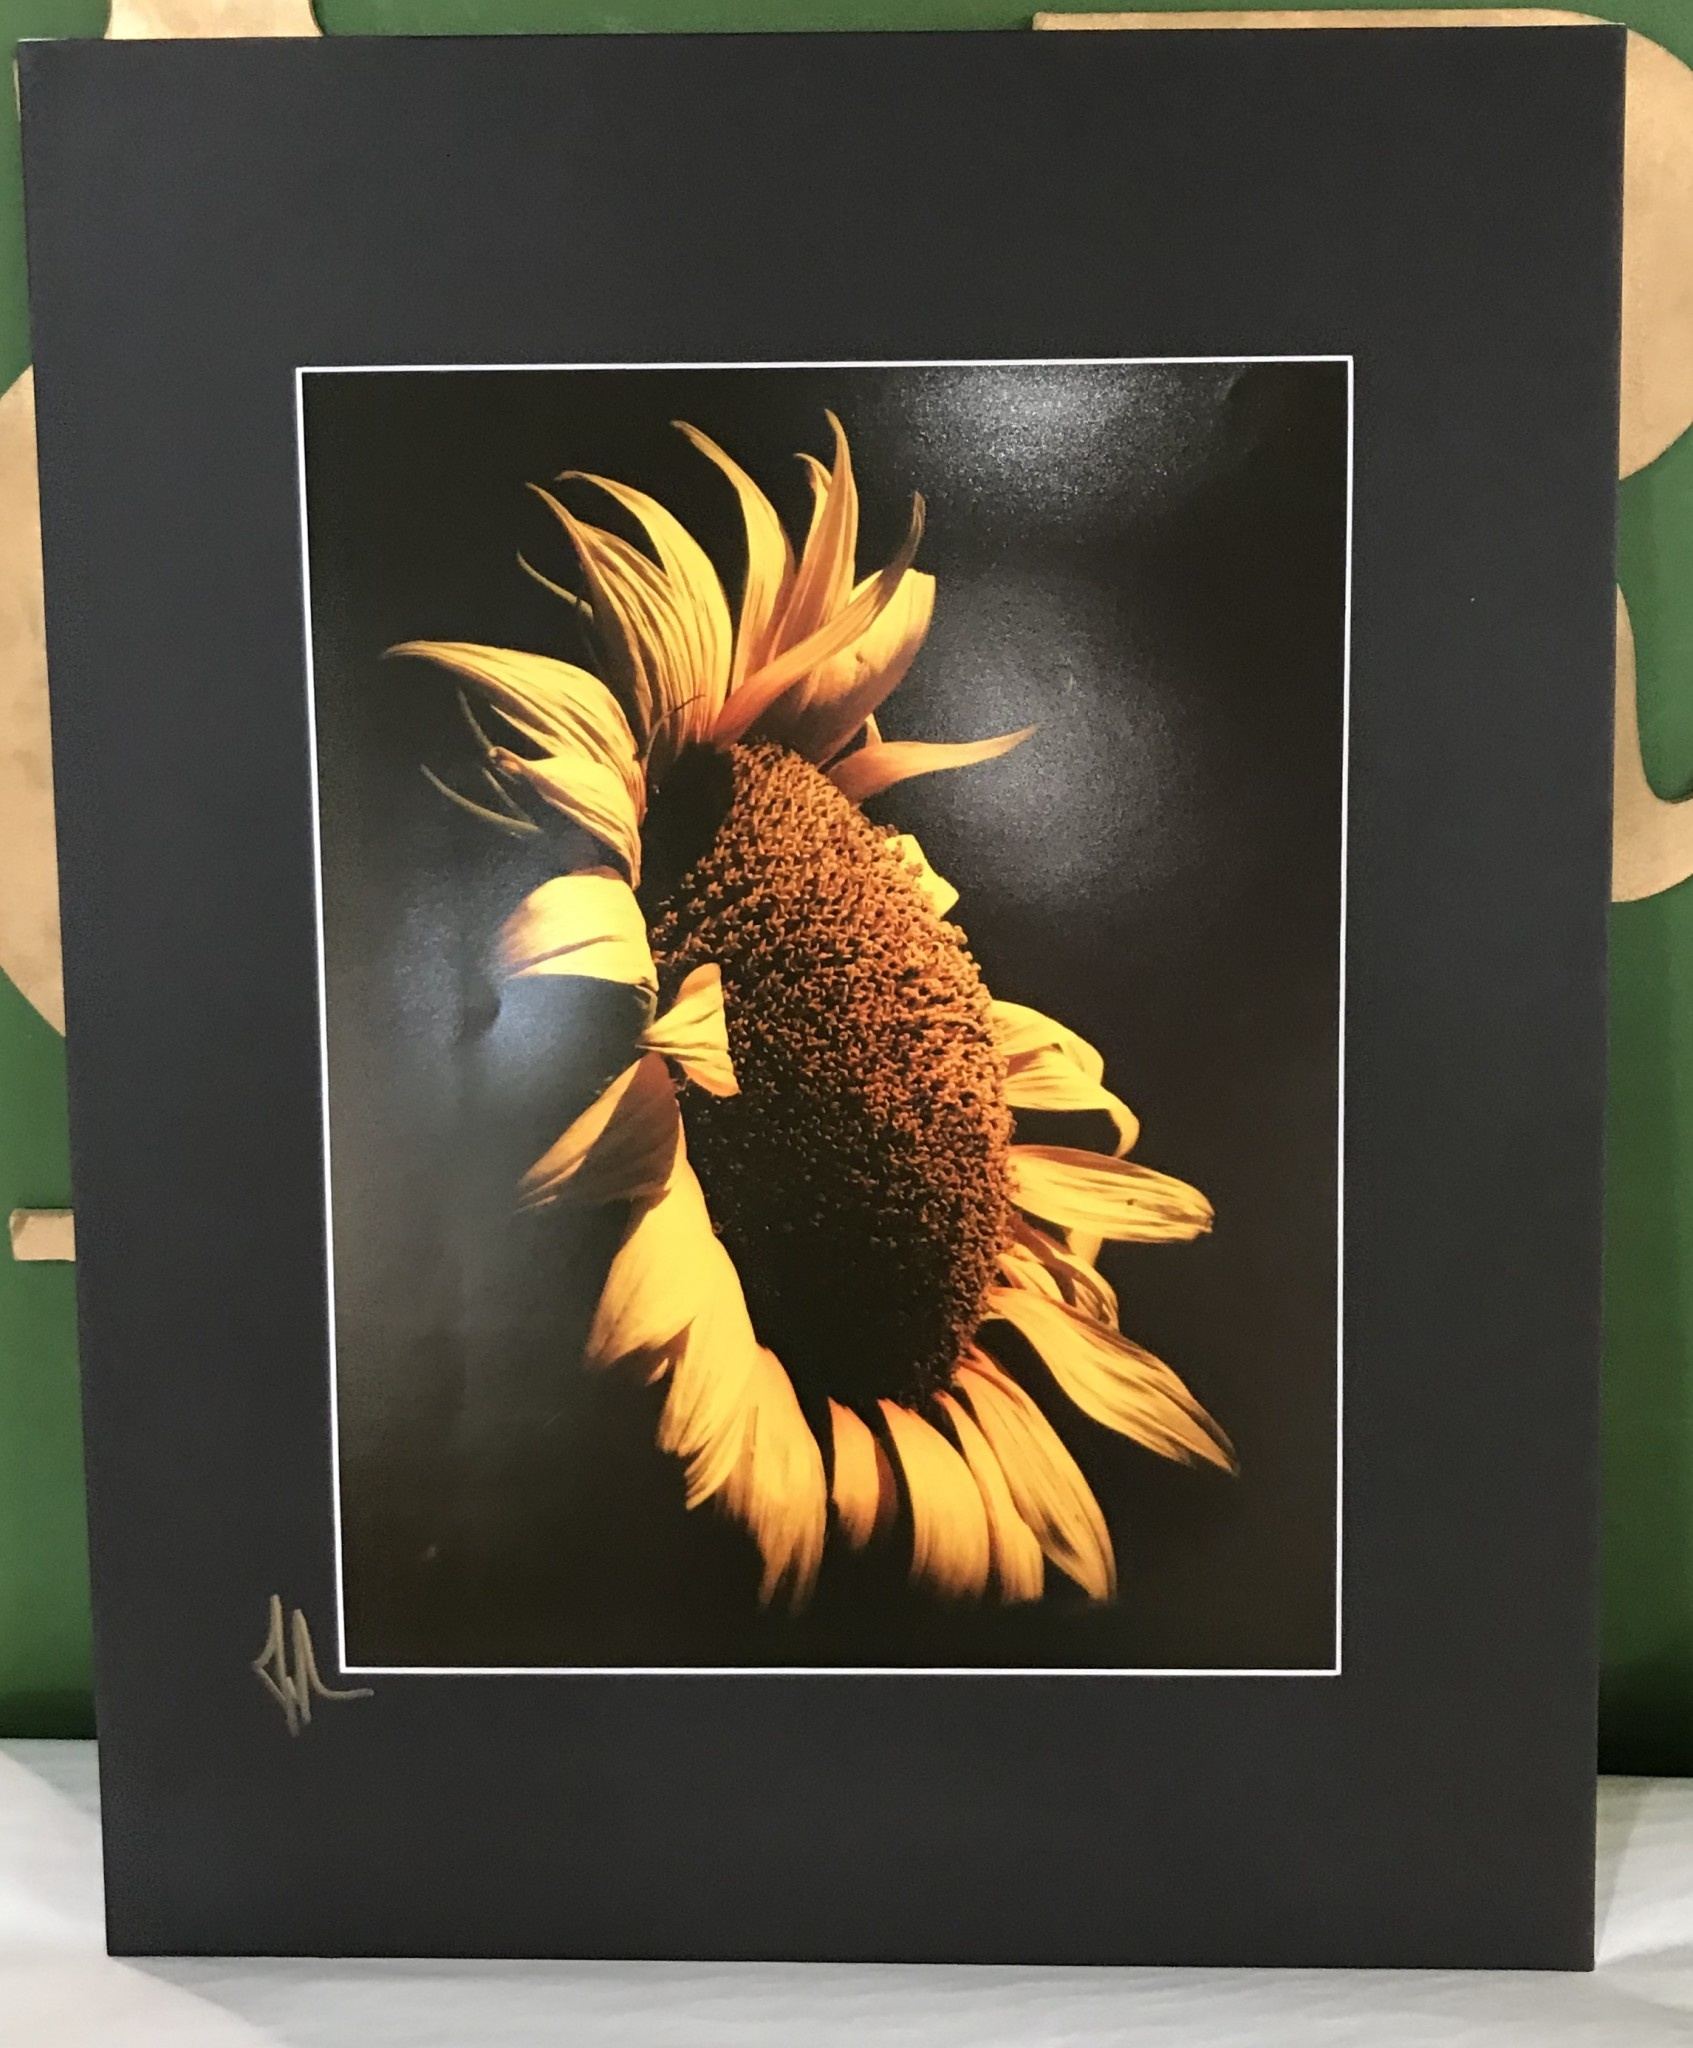 Drone-tography Drone-tography Sunflower #1 11x14 Print